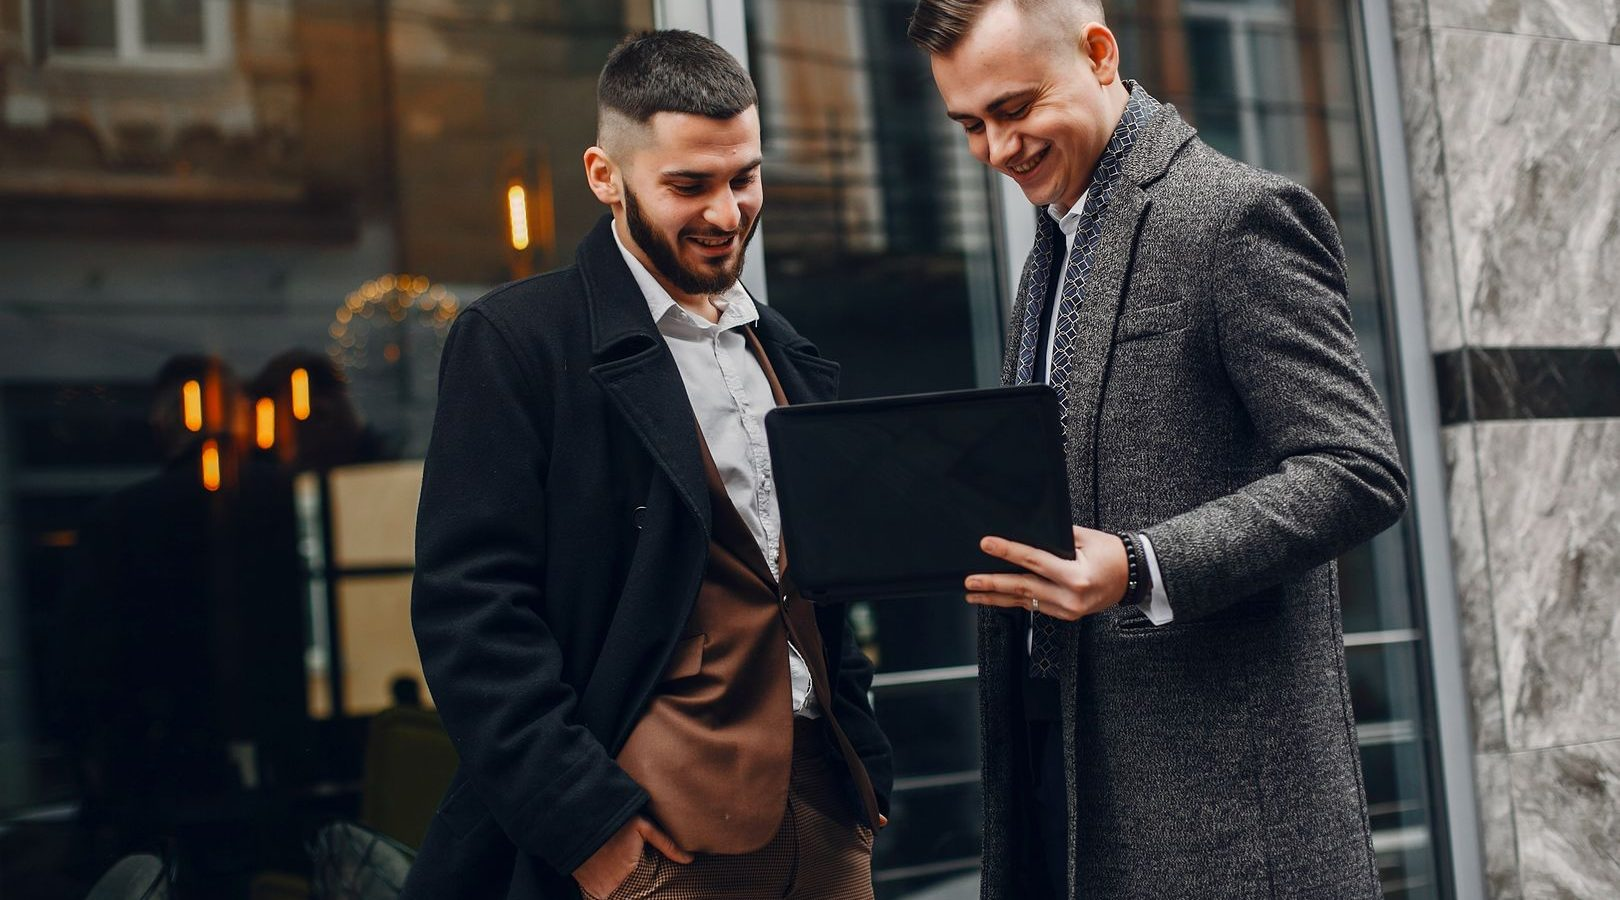 Two handsome men working. Friends talking. Man in a suit and coat